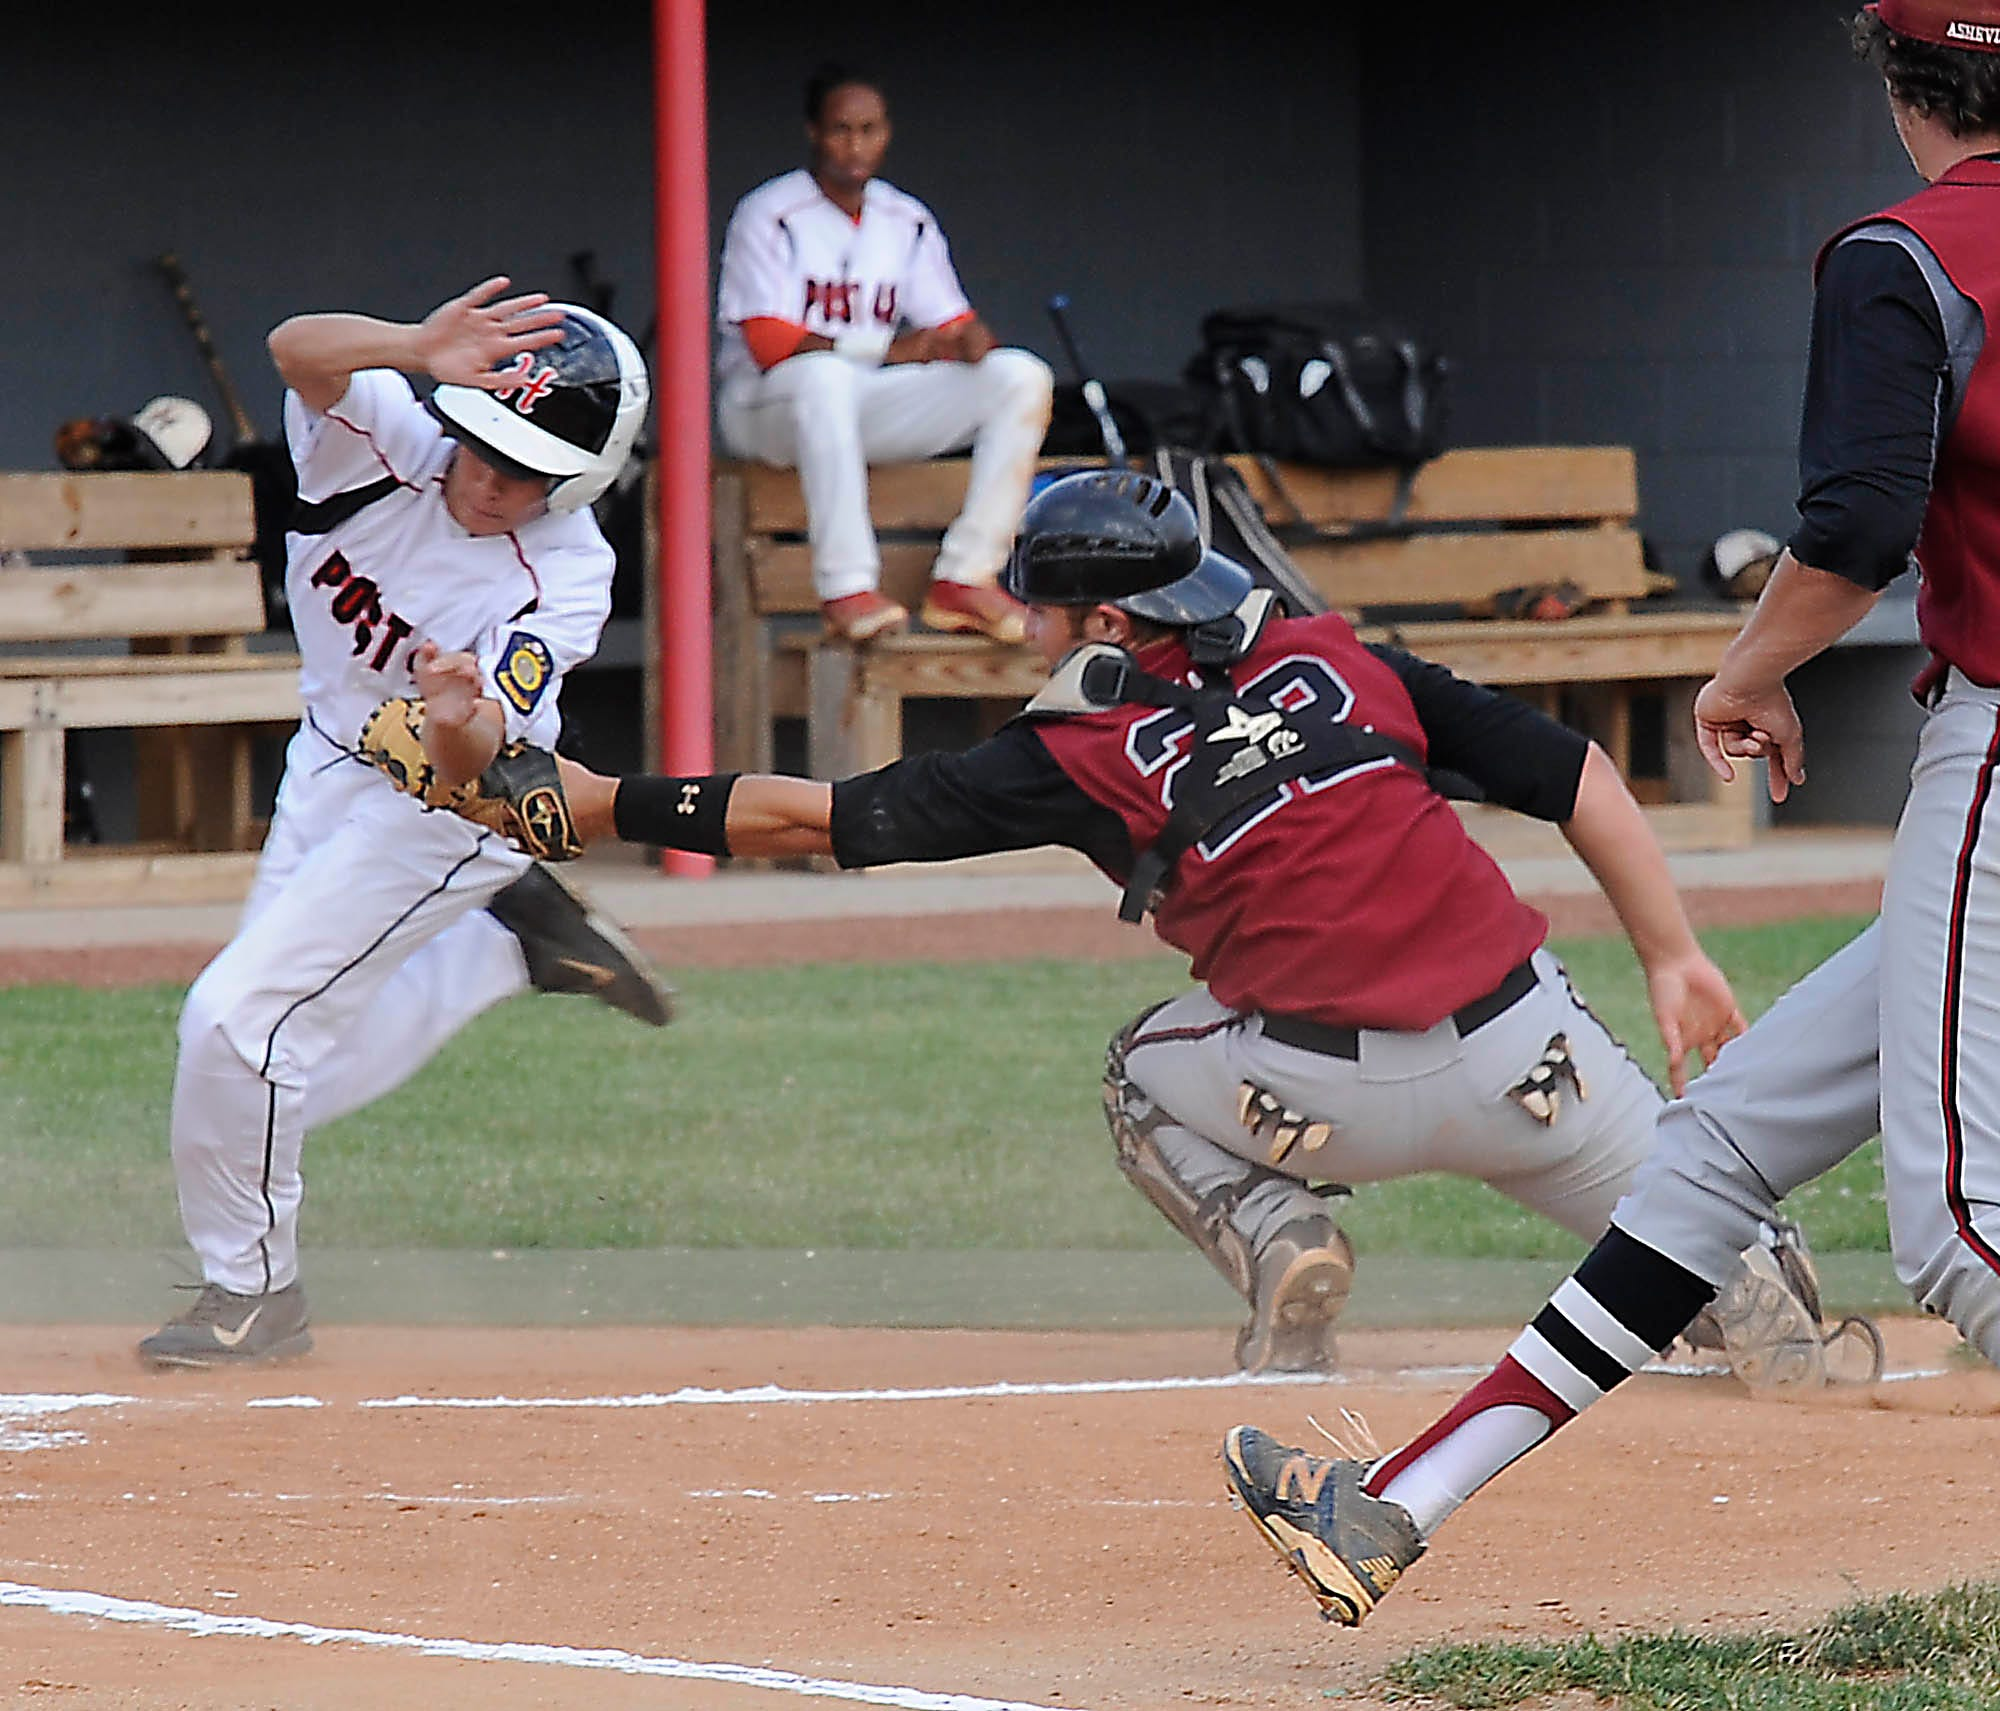 Asheville Post 70 catcher Tanner Smith tries to apply a tag to a Hickory Post 48 baserunner in Monday night's playoff game at Erwin High.